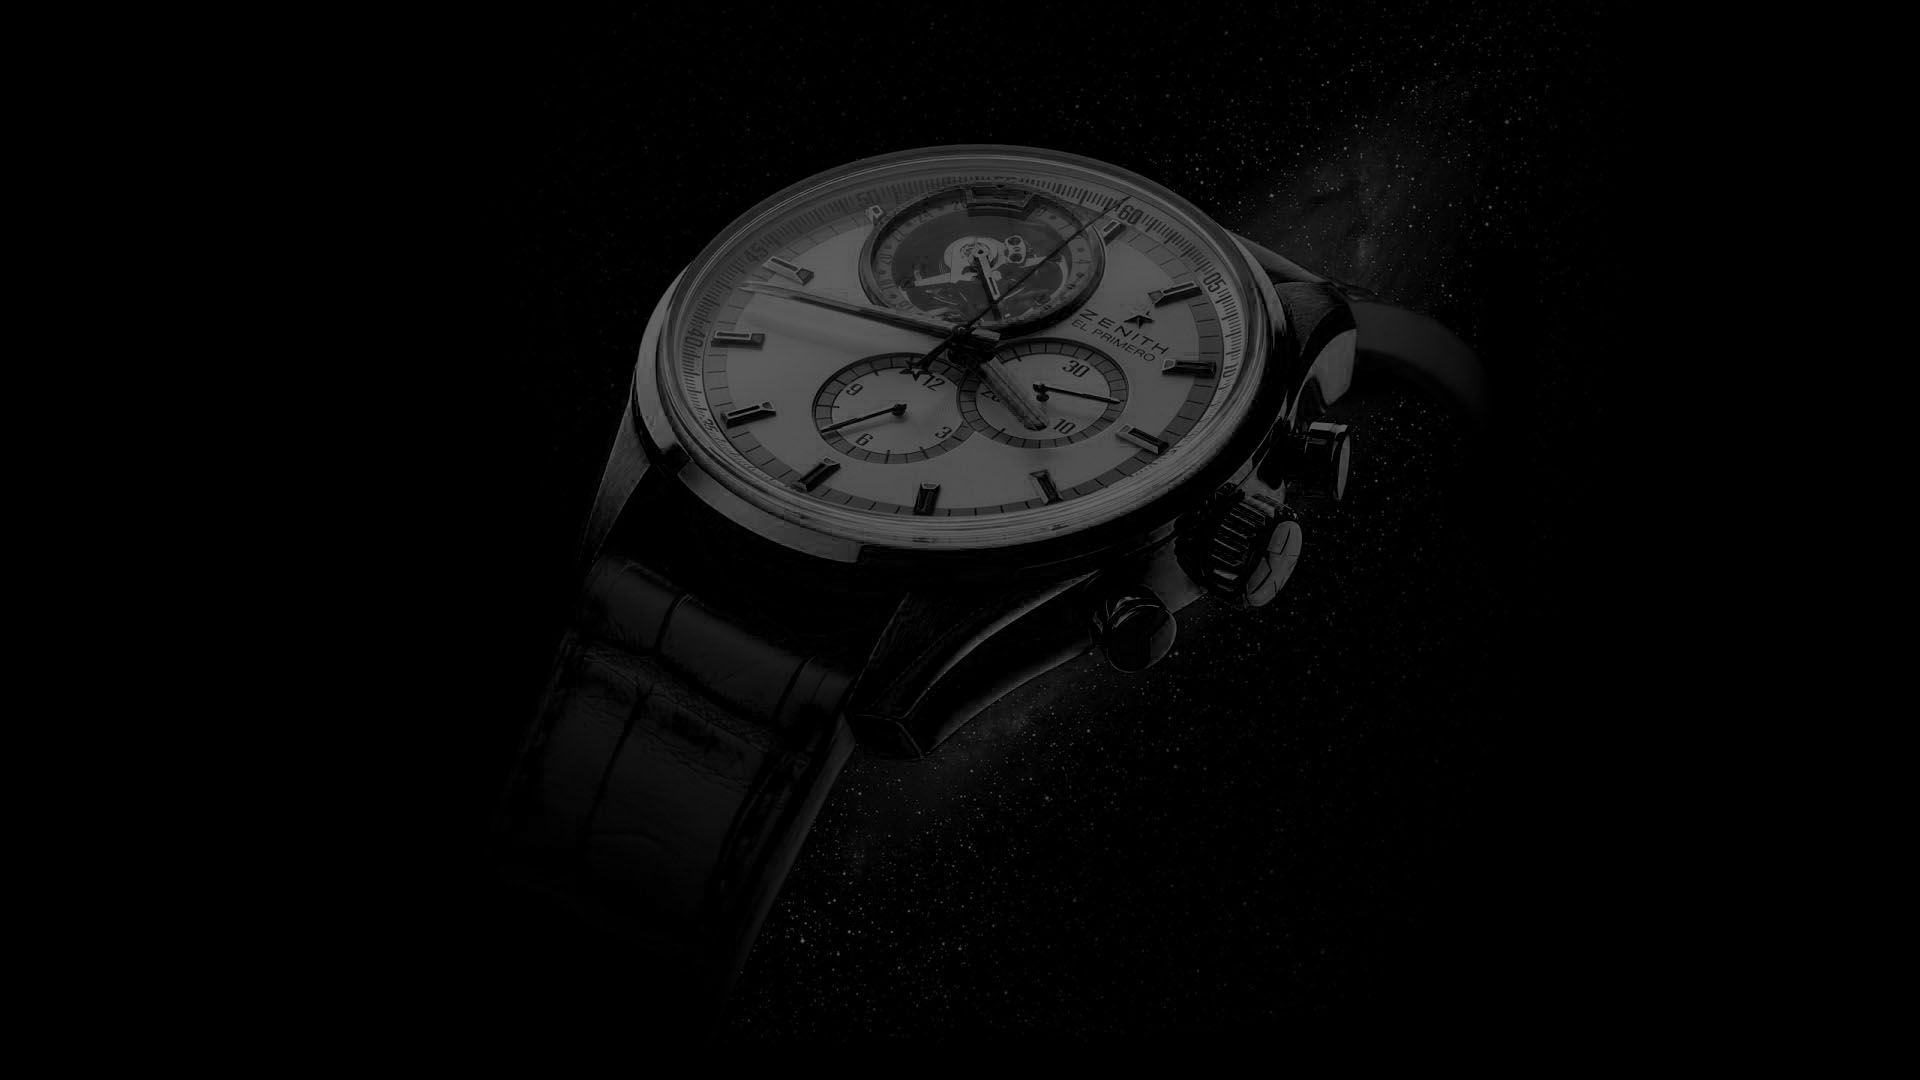 Vendi il tuo orologio Plus Watch